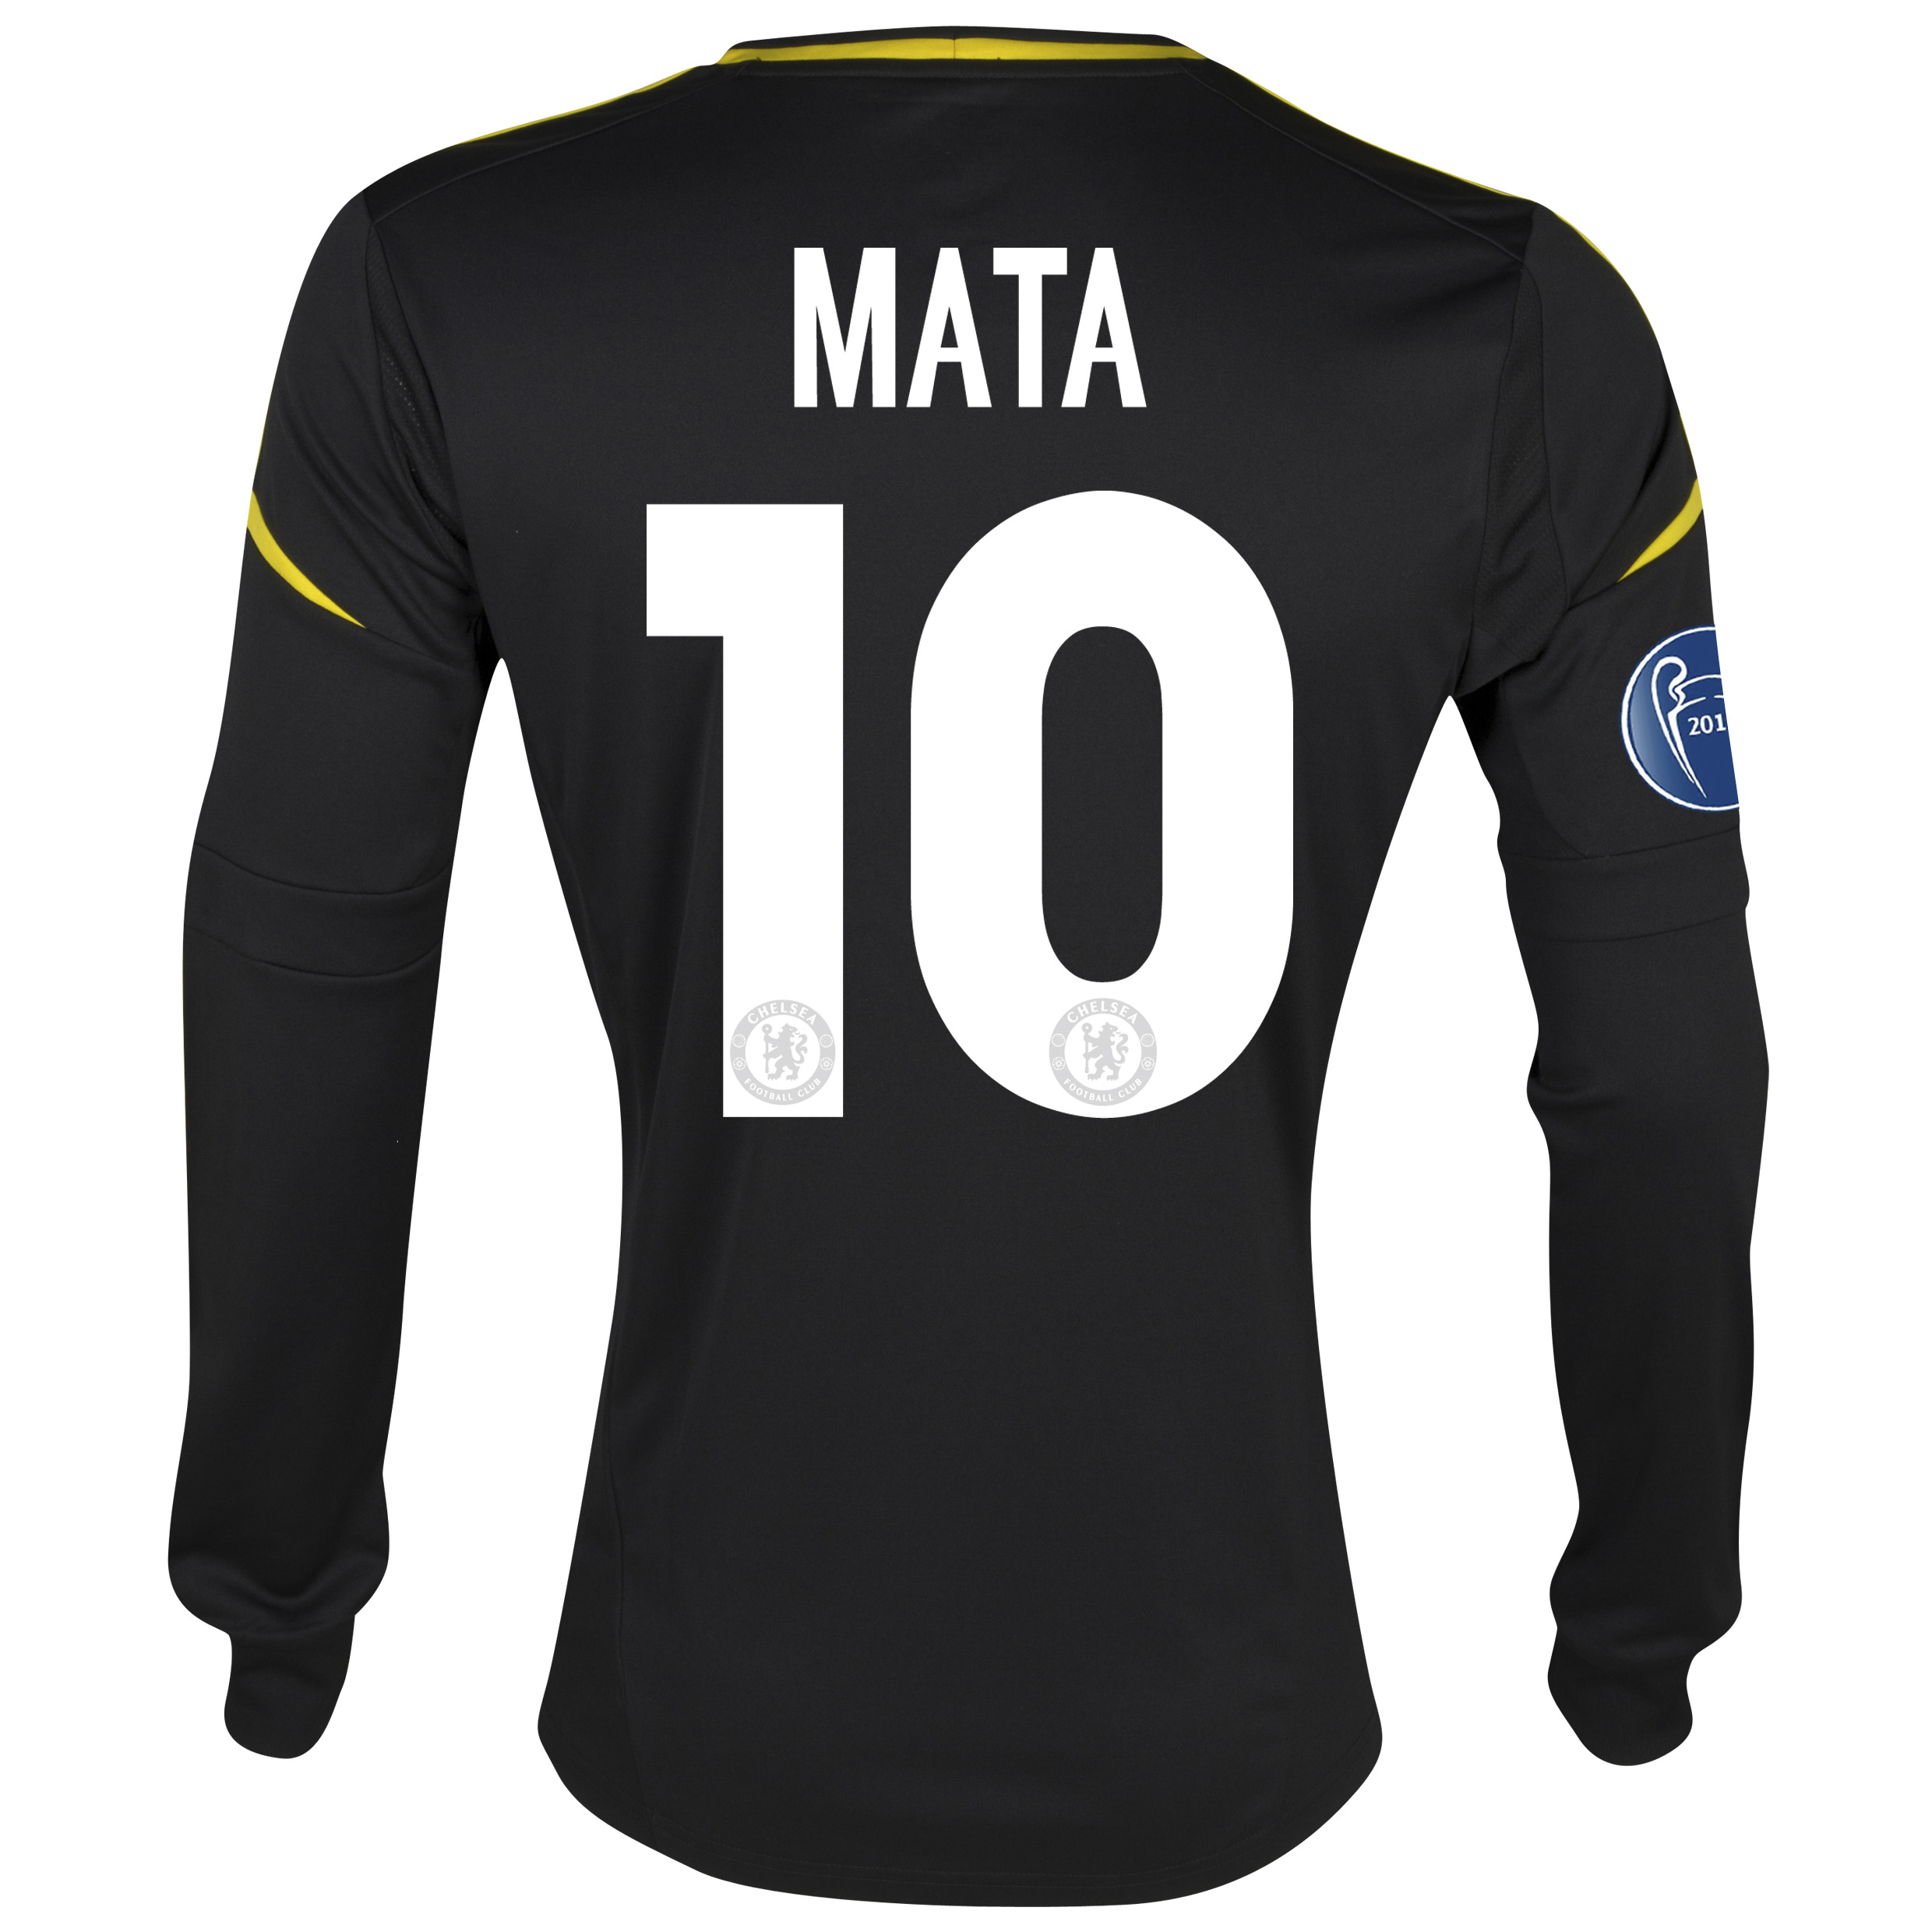 Chelsea UEFA Champions League Third Shirt 2012/13 with Mata 10 printing